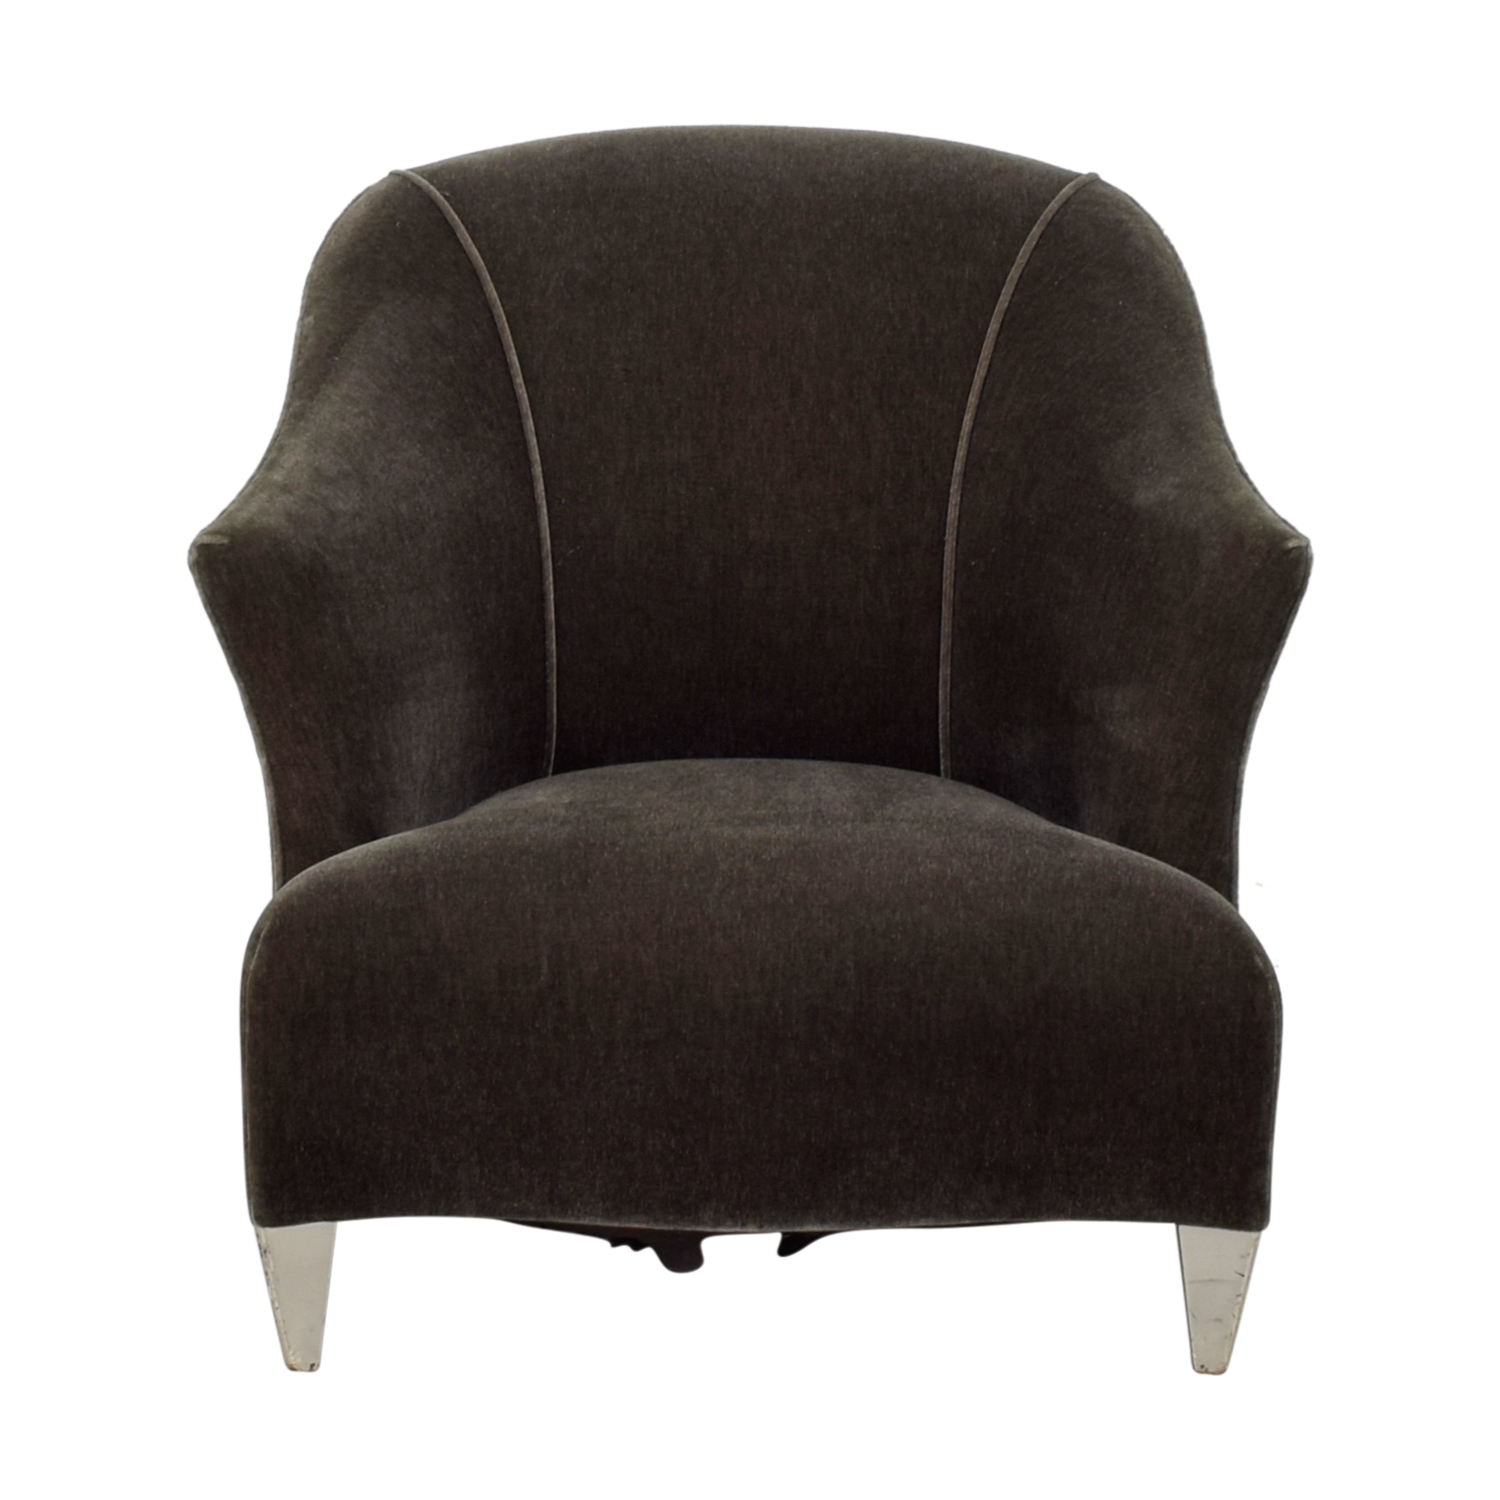 Donghia Shell Charcoal Velour Accent Chair sale